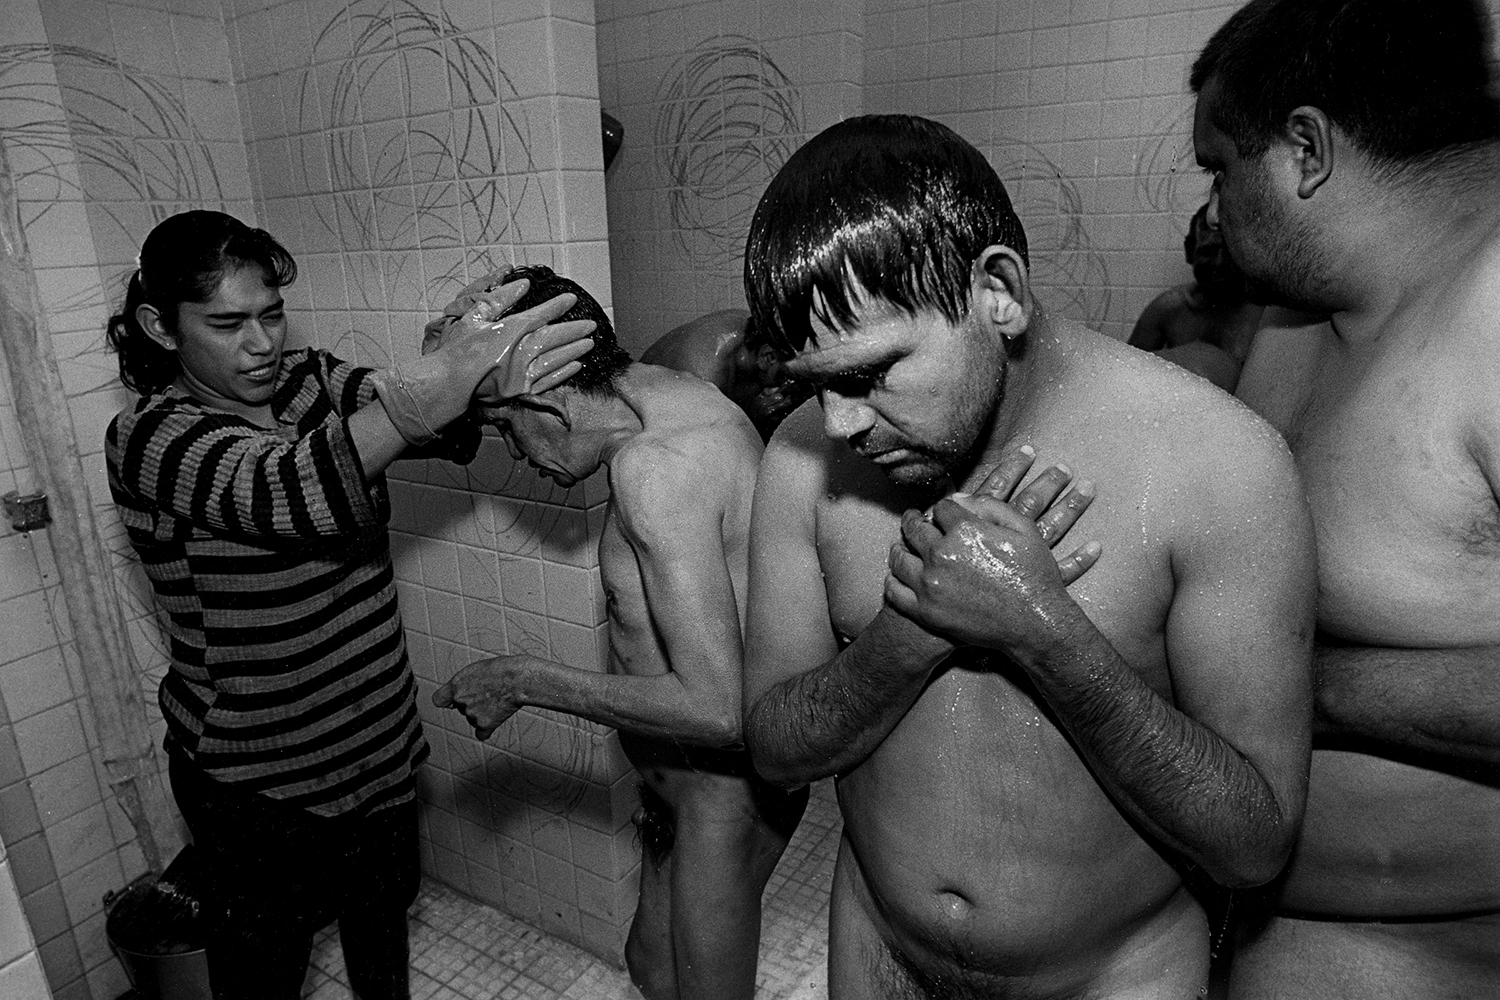 Ice cold showers with no towels  Ocaranza Psychiatric Institute Hidalgo, Mexico 1999